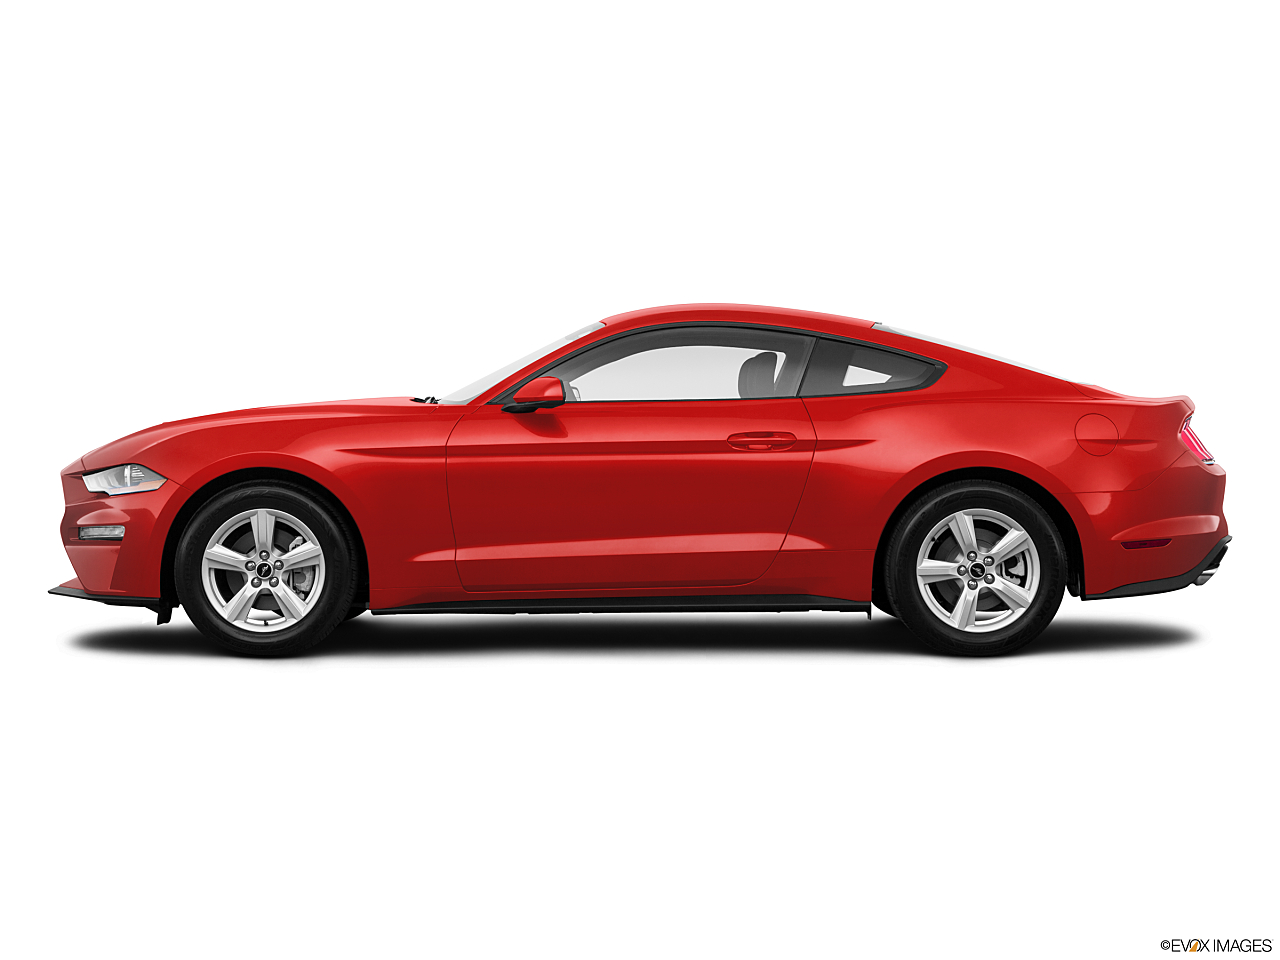 2018 Ford Mustang at West Brothers Auto Group of Sullivan, MO. The dealership has not provided a description for the image.